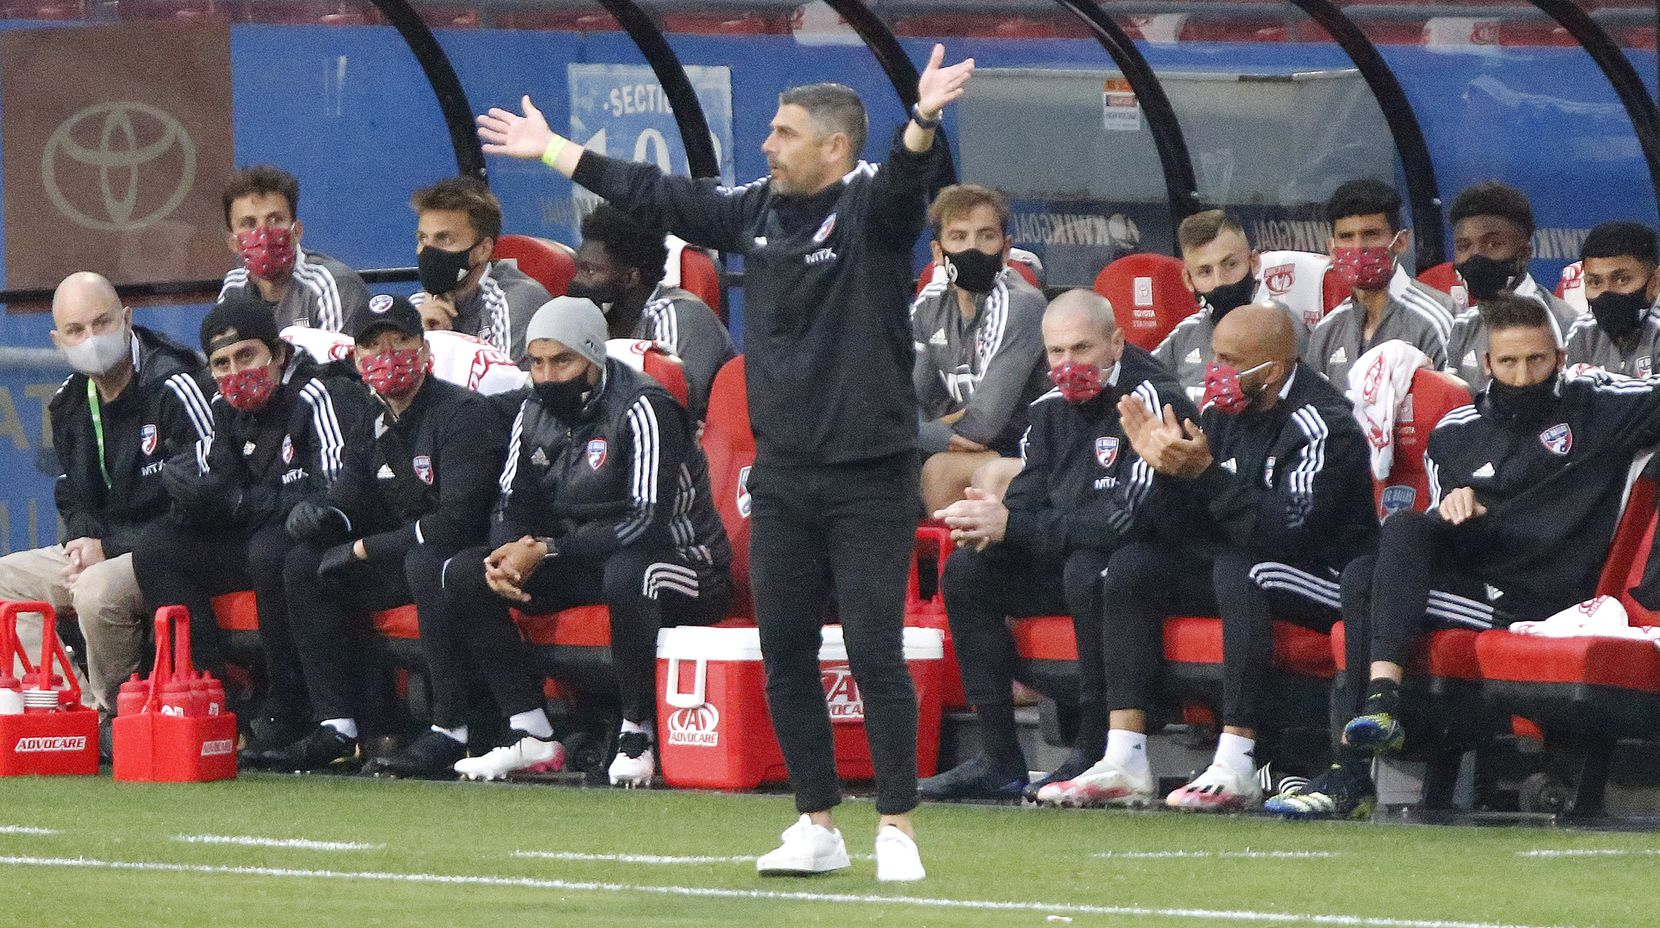 FC Dallas head coach Luchi Gonzalez questions a no call during the first half as FC Dallas hosted Real Salt Lake at Toyota Stadium in Frisco on Saturday, May 22, 2021. (Stewart F. House/Special Contributor)